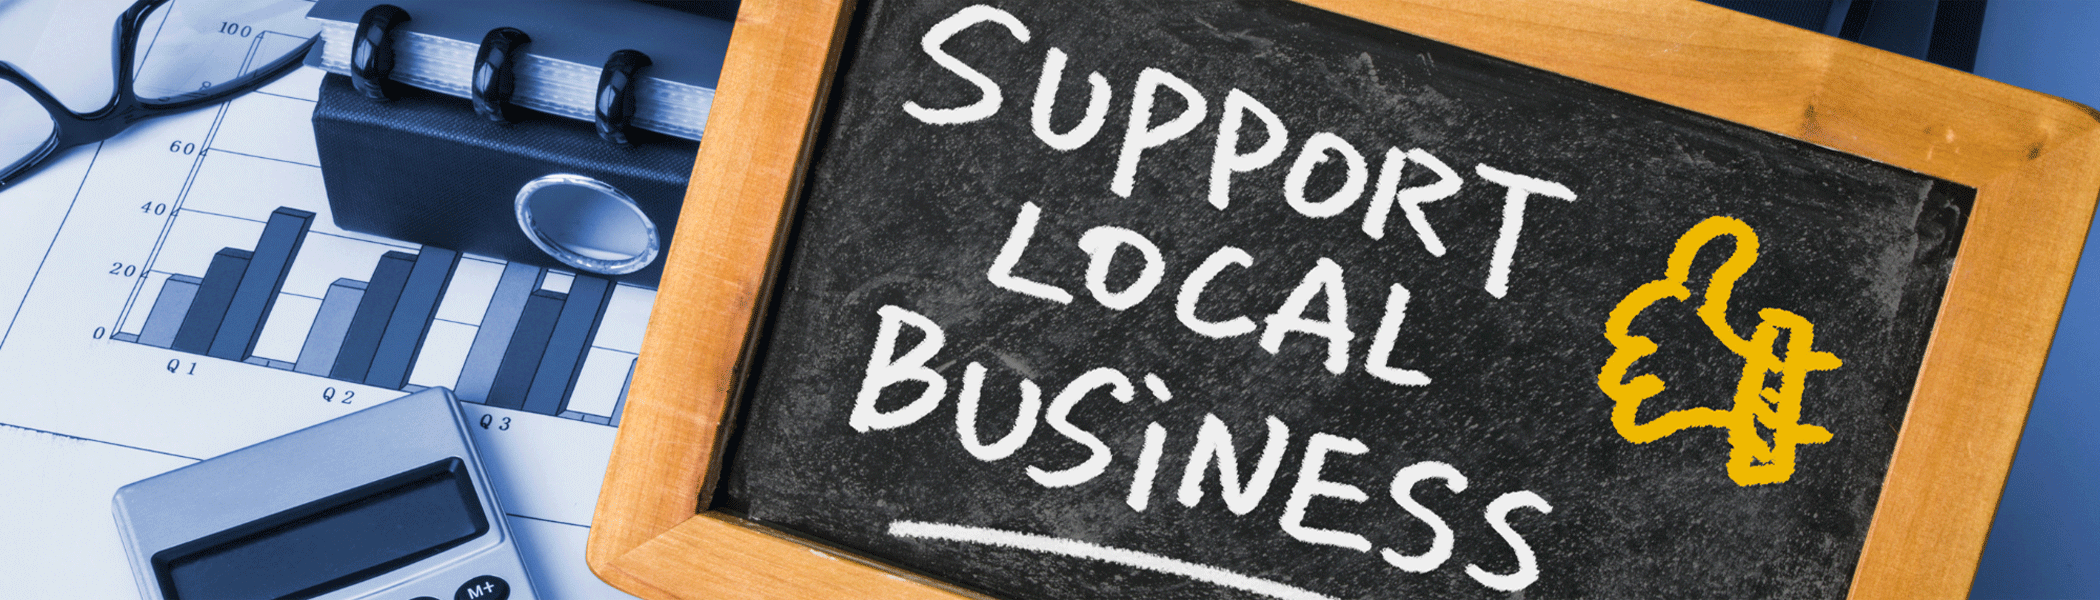 Support businesses in January lockdown